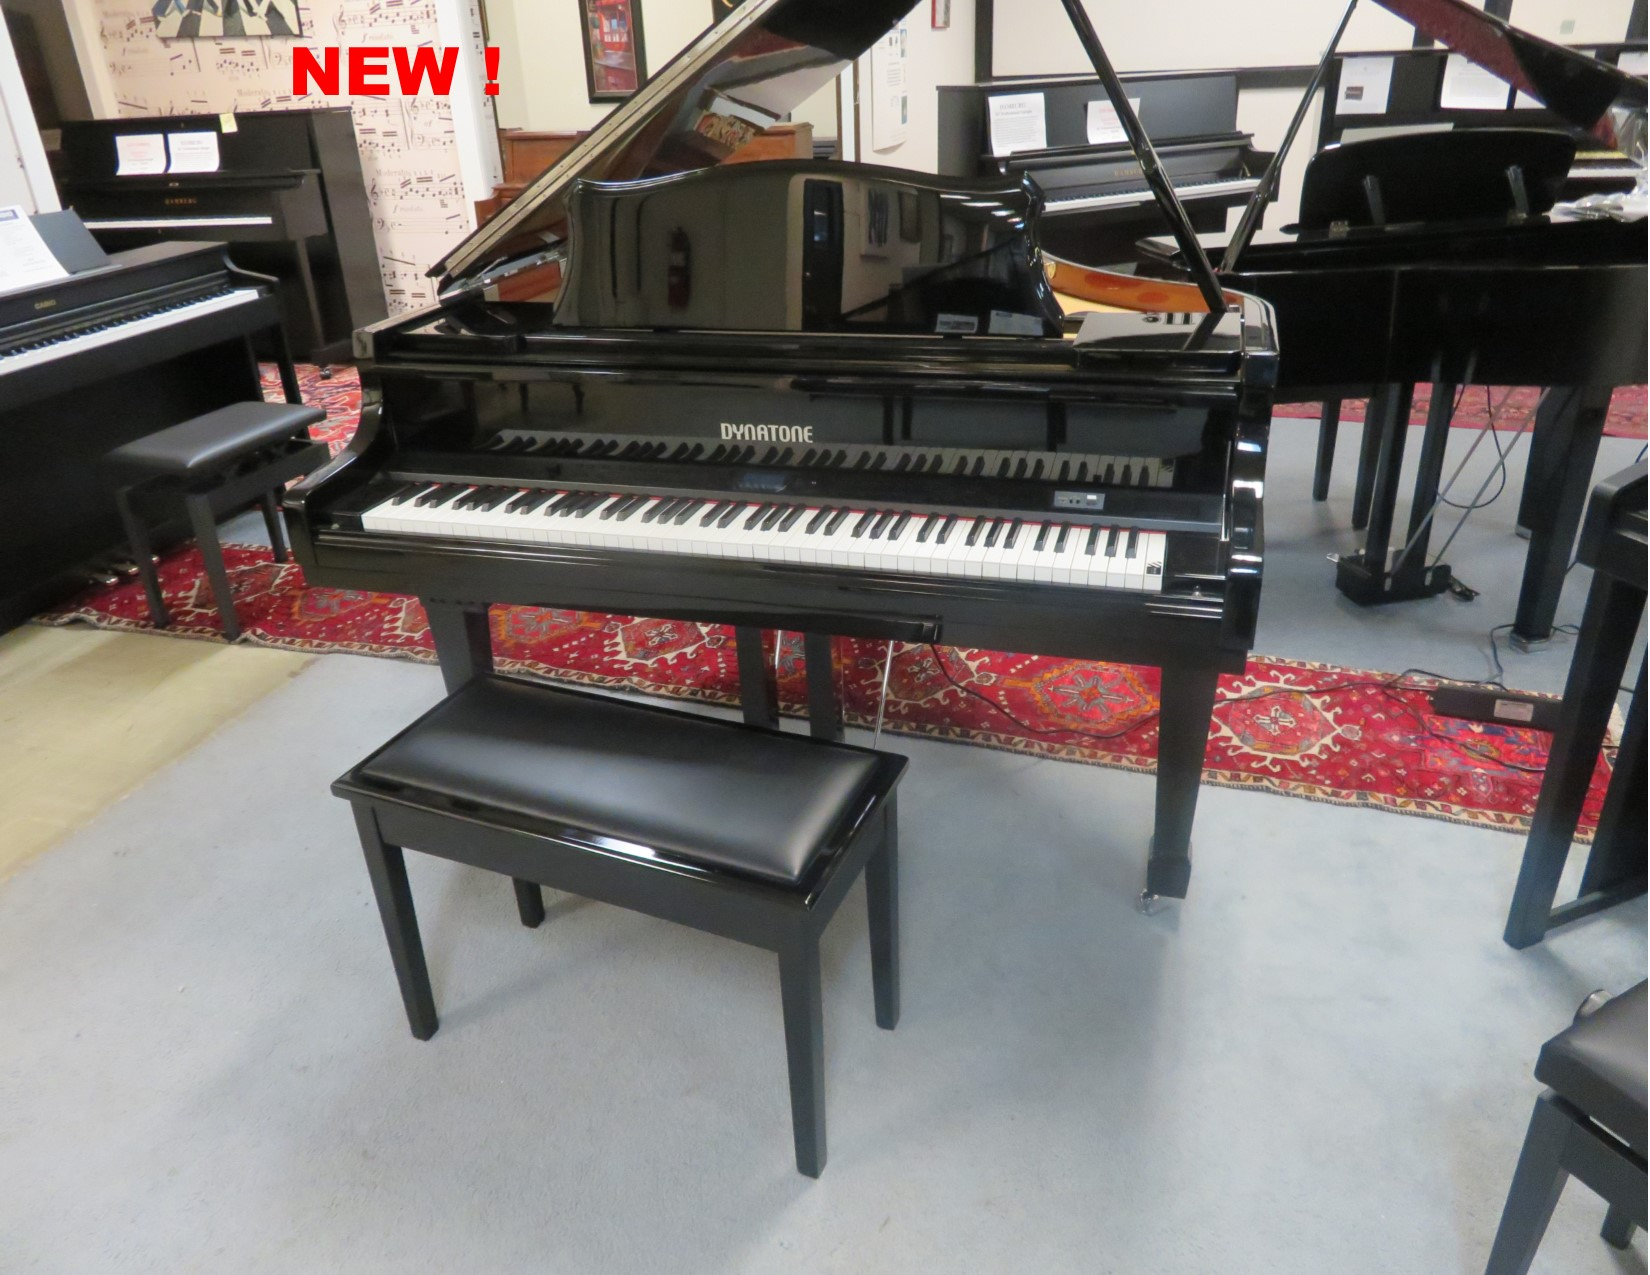 """12365-<br><font color=""""black""""><b>NEW DYNATONE</b></font>""""State of the Art"""" 4'7″ Player Digital Grand Piano Beautiful Polished Ebony<br><font color=""""blue""""><b>Keys Move!! Click Picture for """"Live Video""""</b></font><br><font color=""""red""""><b>Guaranteed Lowest Price !</b></font><br>"""